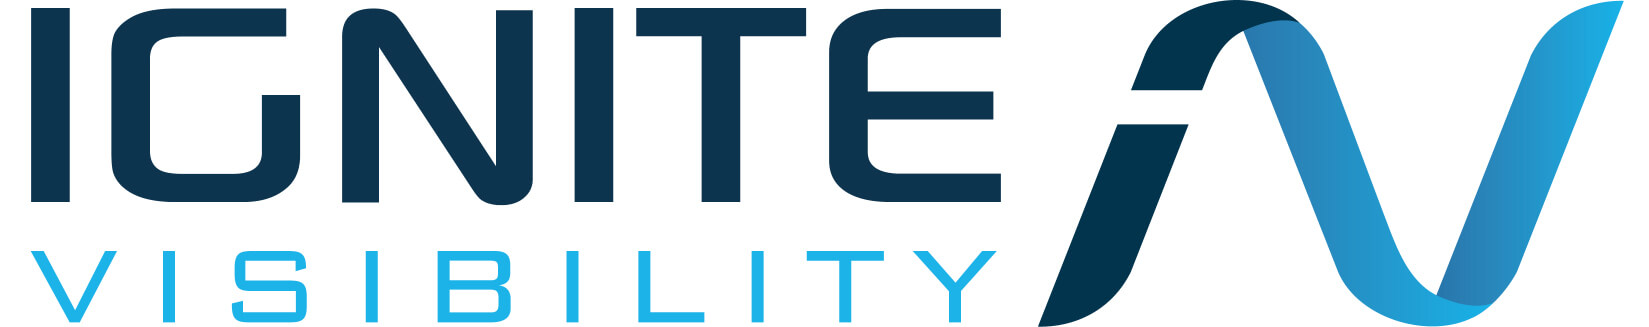 Best ORM Company Logo: Ignite Visibility